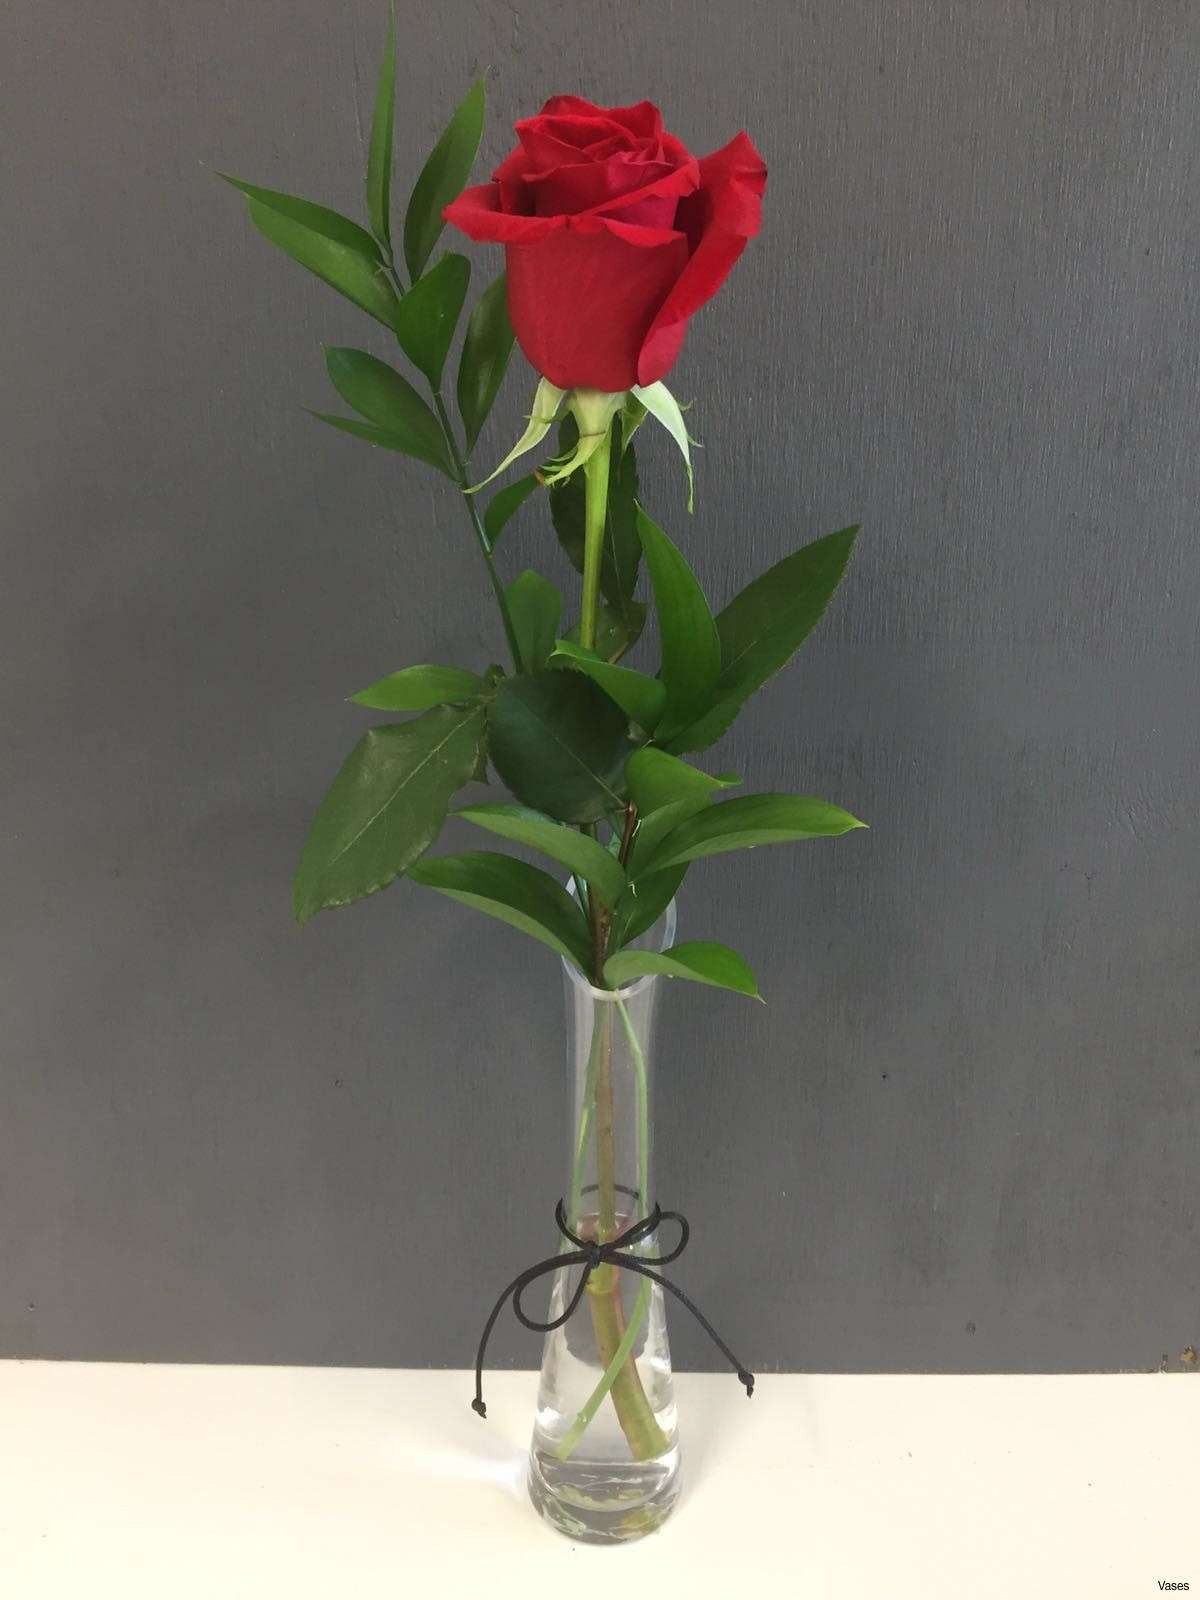 clear plastic bud vase of elegant roses in a vase pictures beginneryogaclassesnear me with roses red in a vase singleh vases rose single i 0d invasive design inspiration book